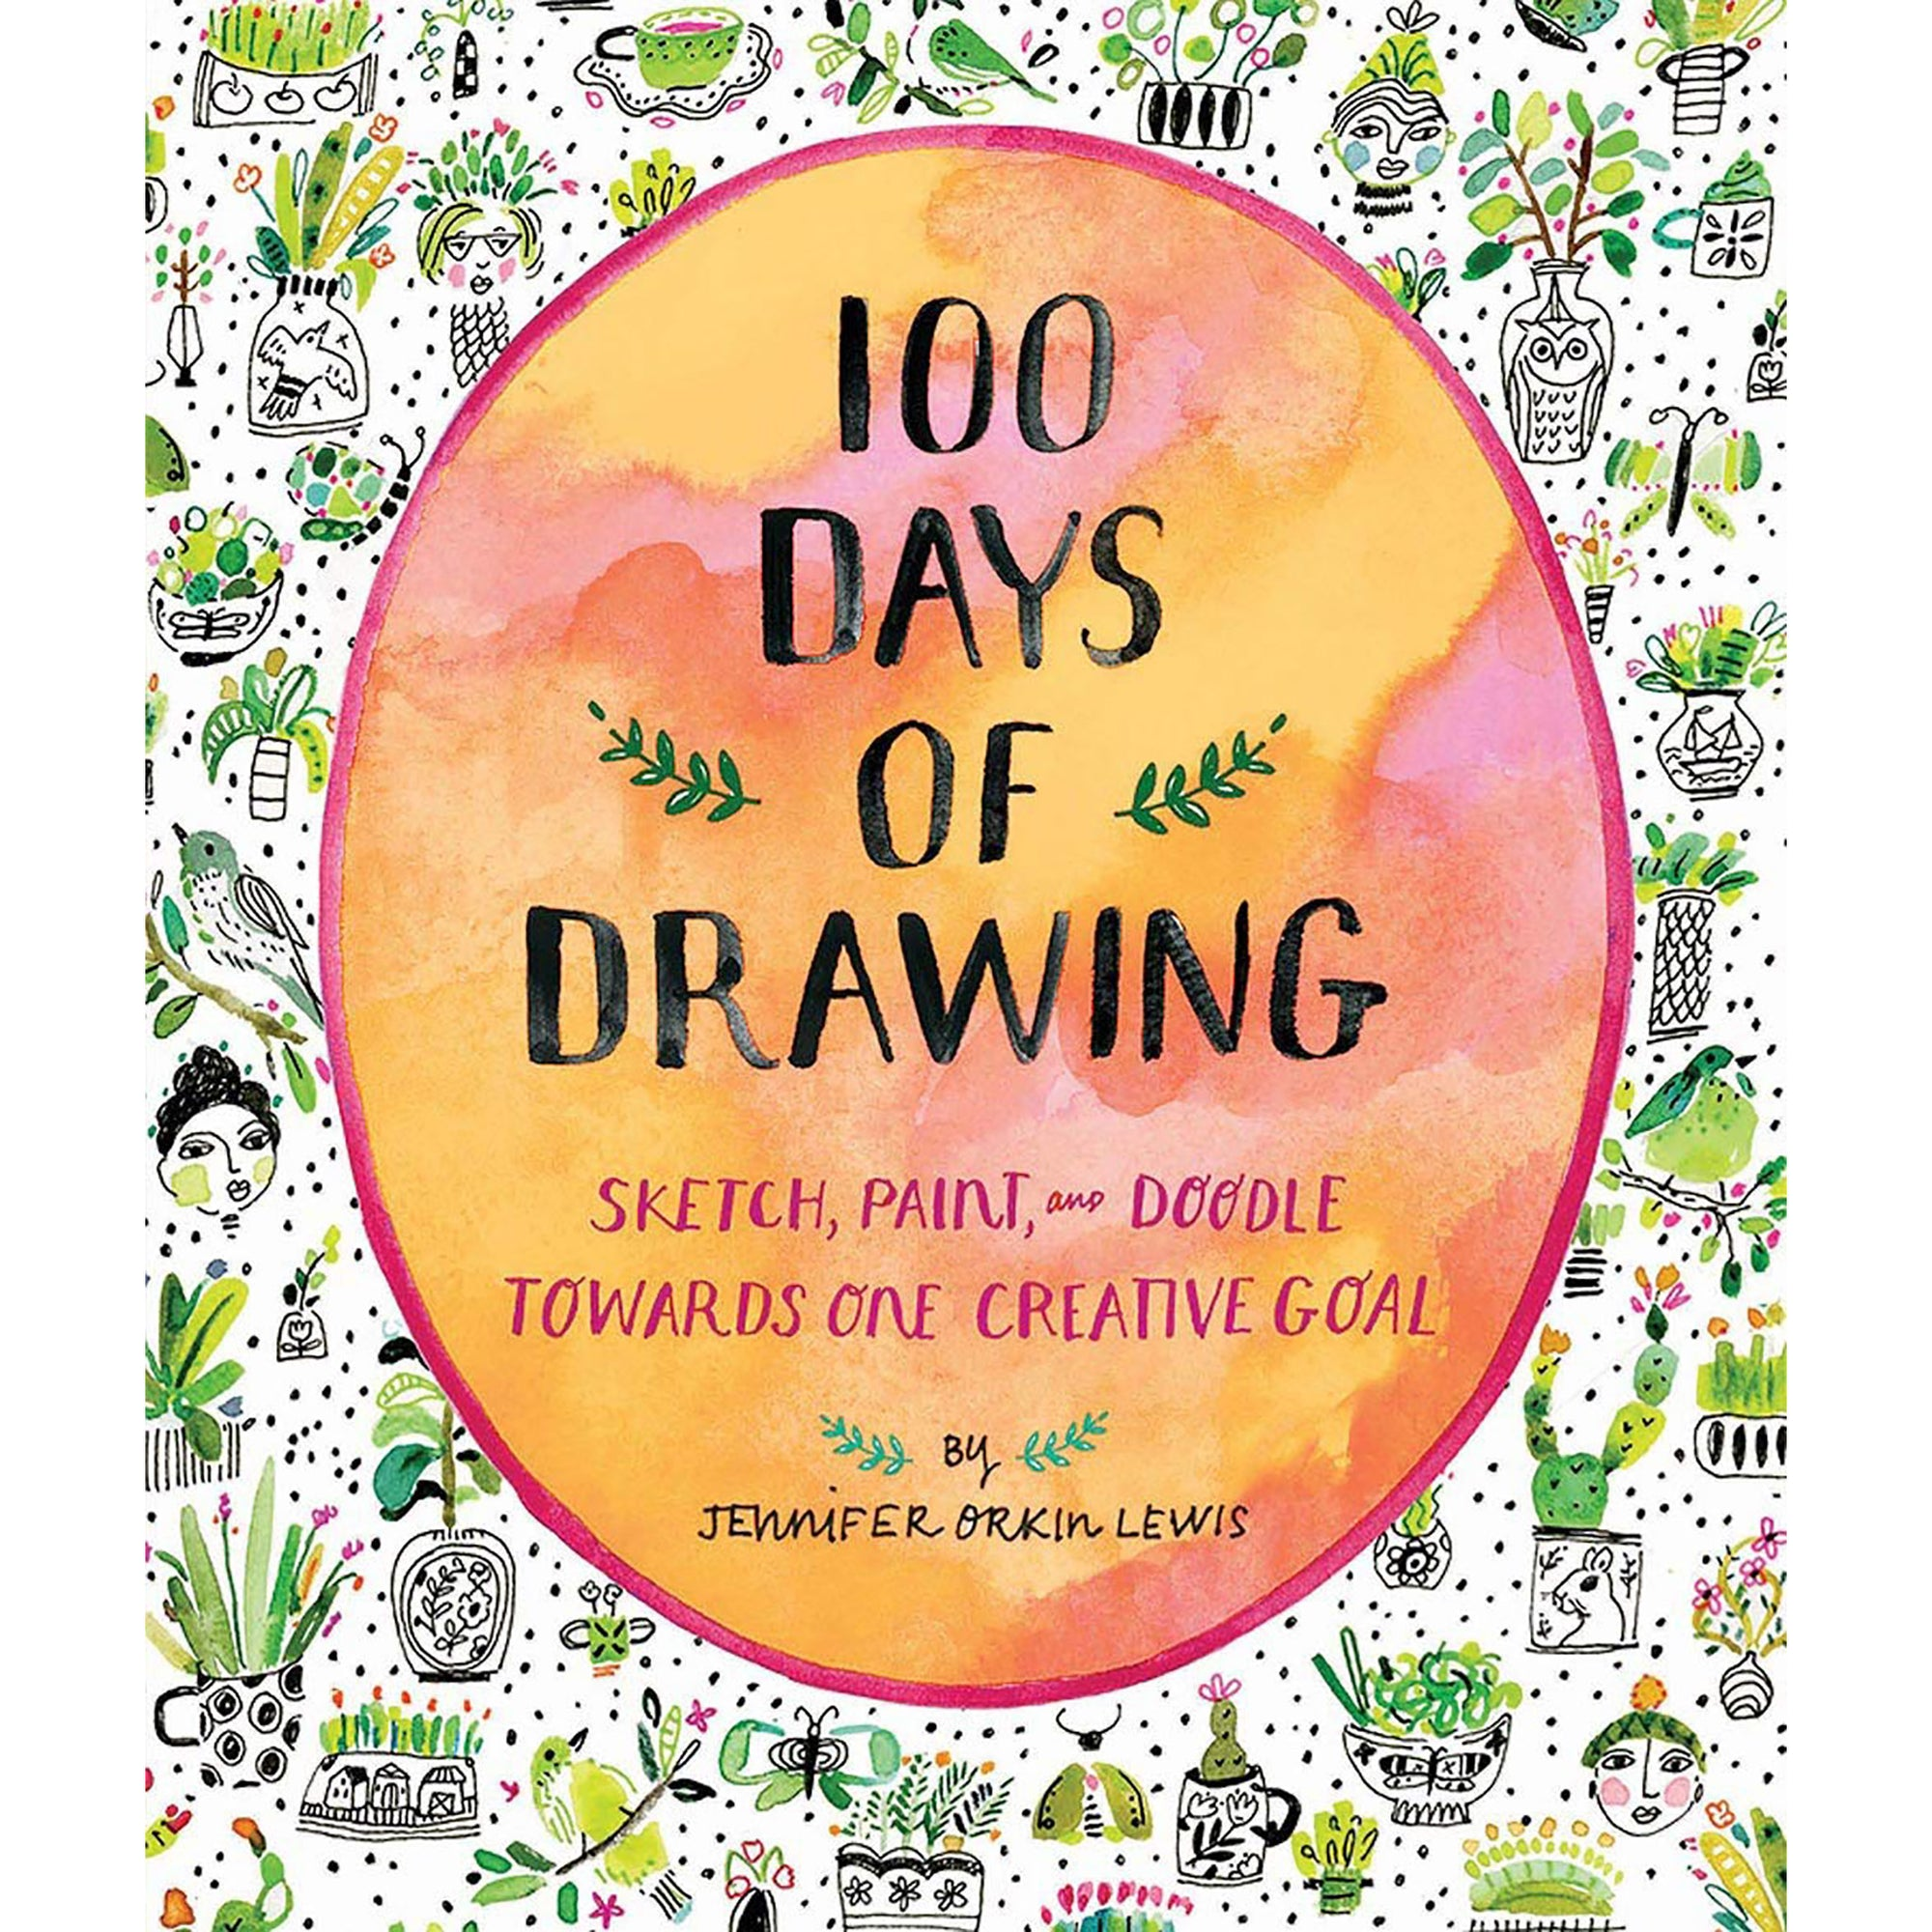 100 Days of Drawing: Sketch, Paint, and Doodle Towards One Creative Goal | Getty Store